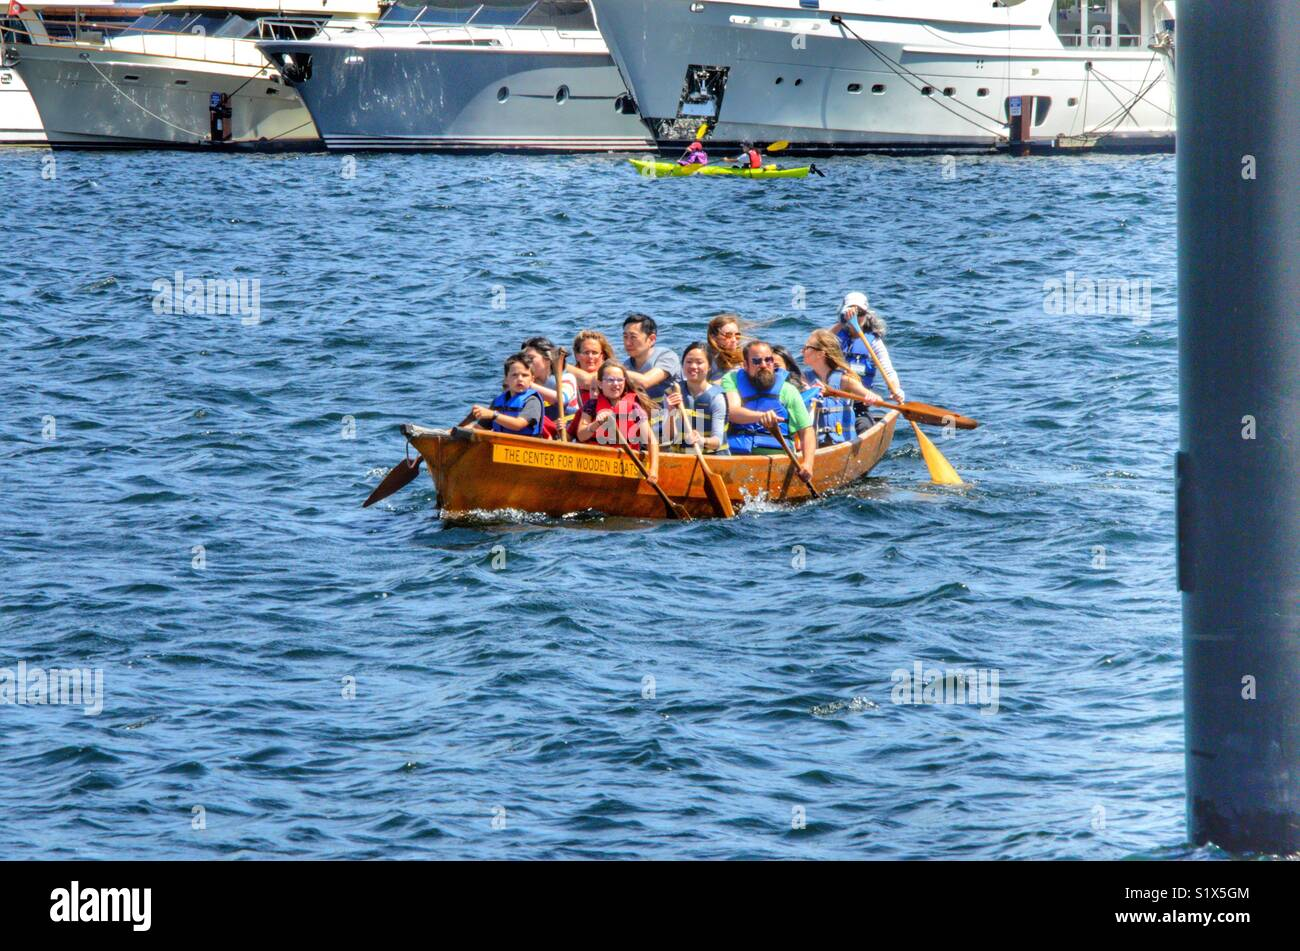 People out paddling in a large boat on Lake Union in Seattle Washington - Stock Image